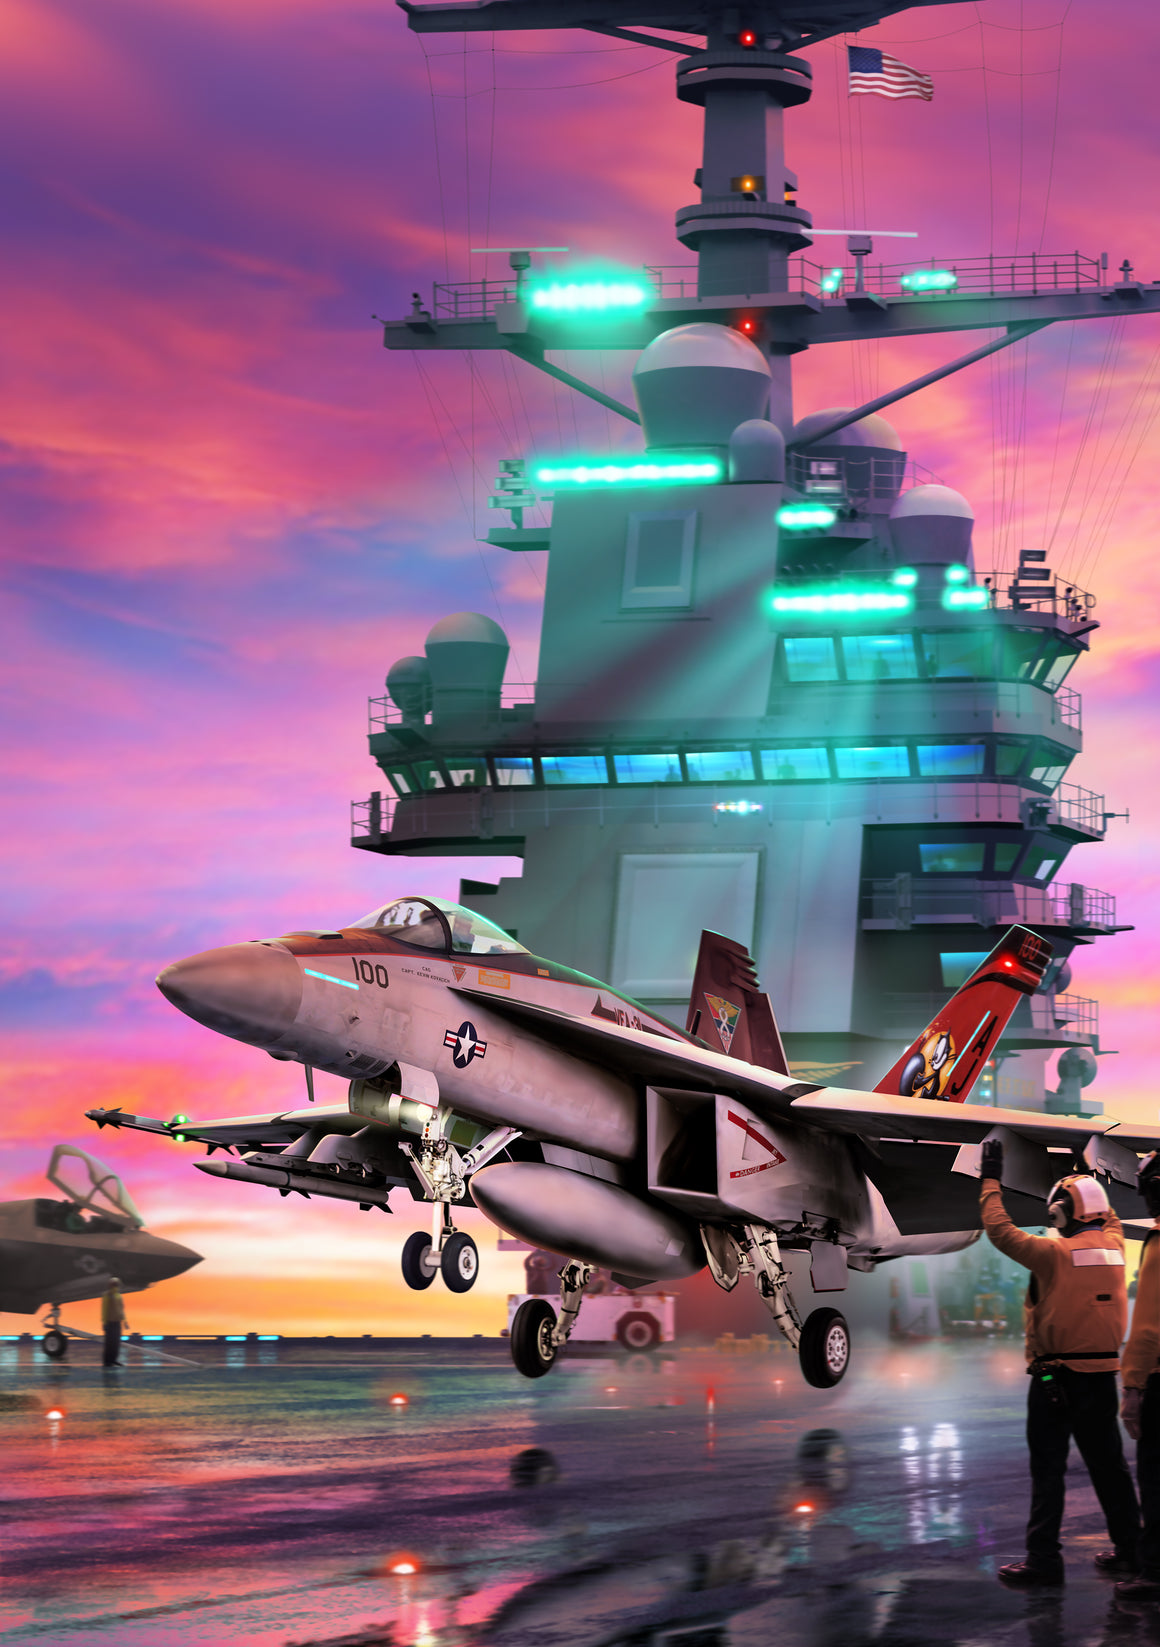 F/A-18E Super Hornet of VFA 31 on the USS Gerald R. Ford, by Ron Cole